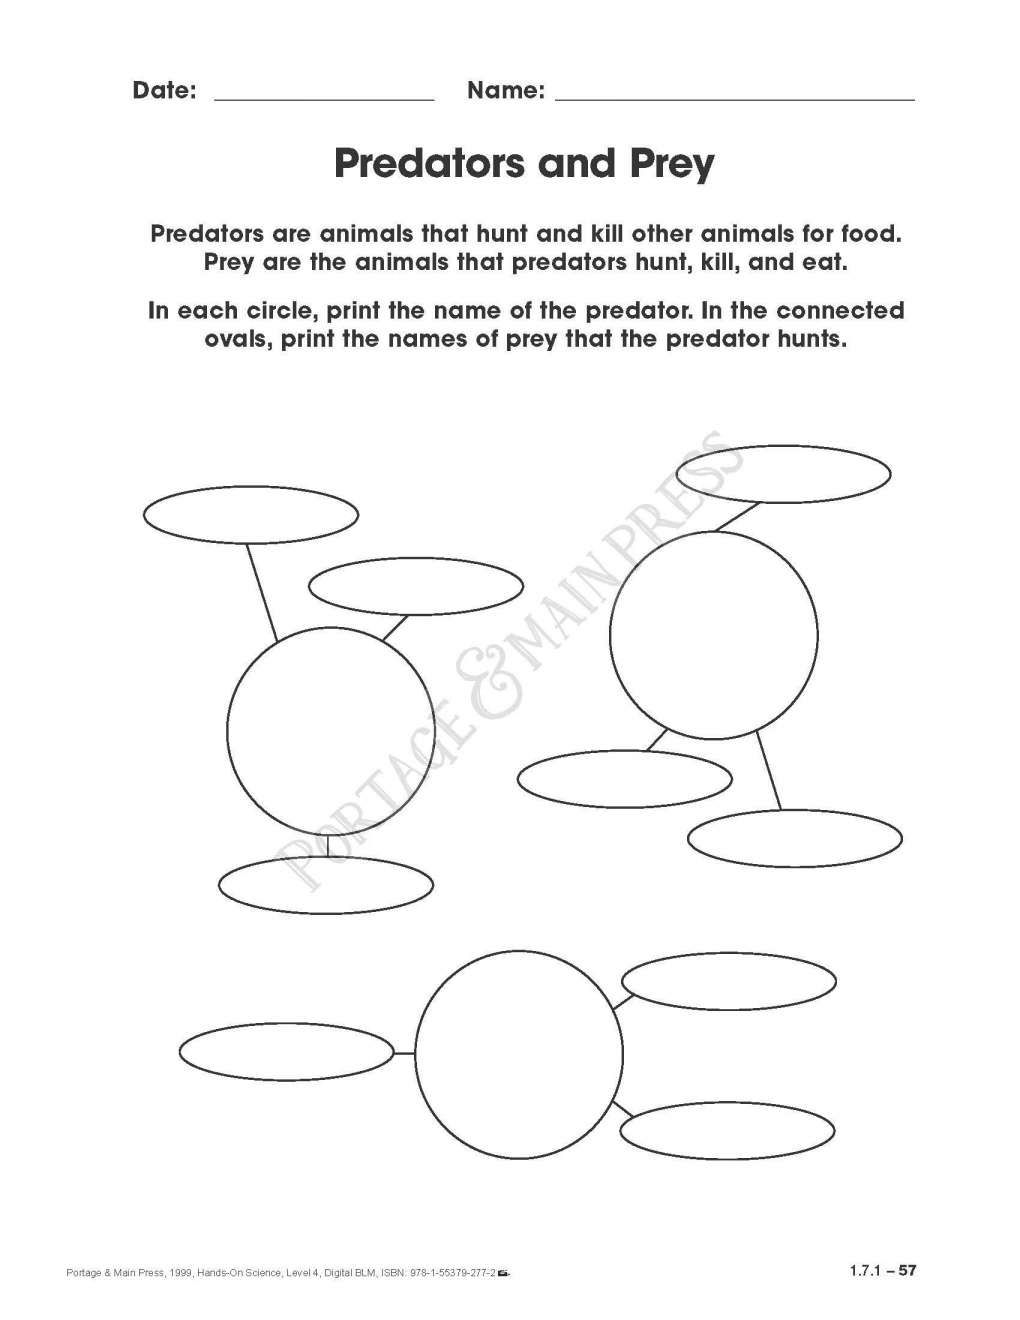 15+ Predator And Prey Worksheet 4Th Grade   Science skills [ 1320 x 1020 Pixel ]